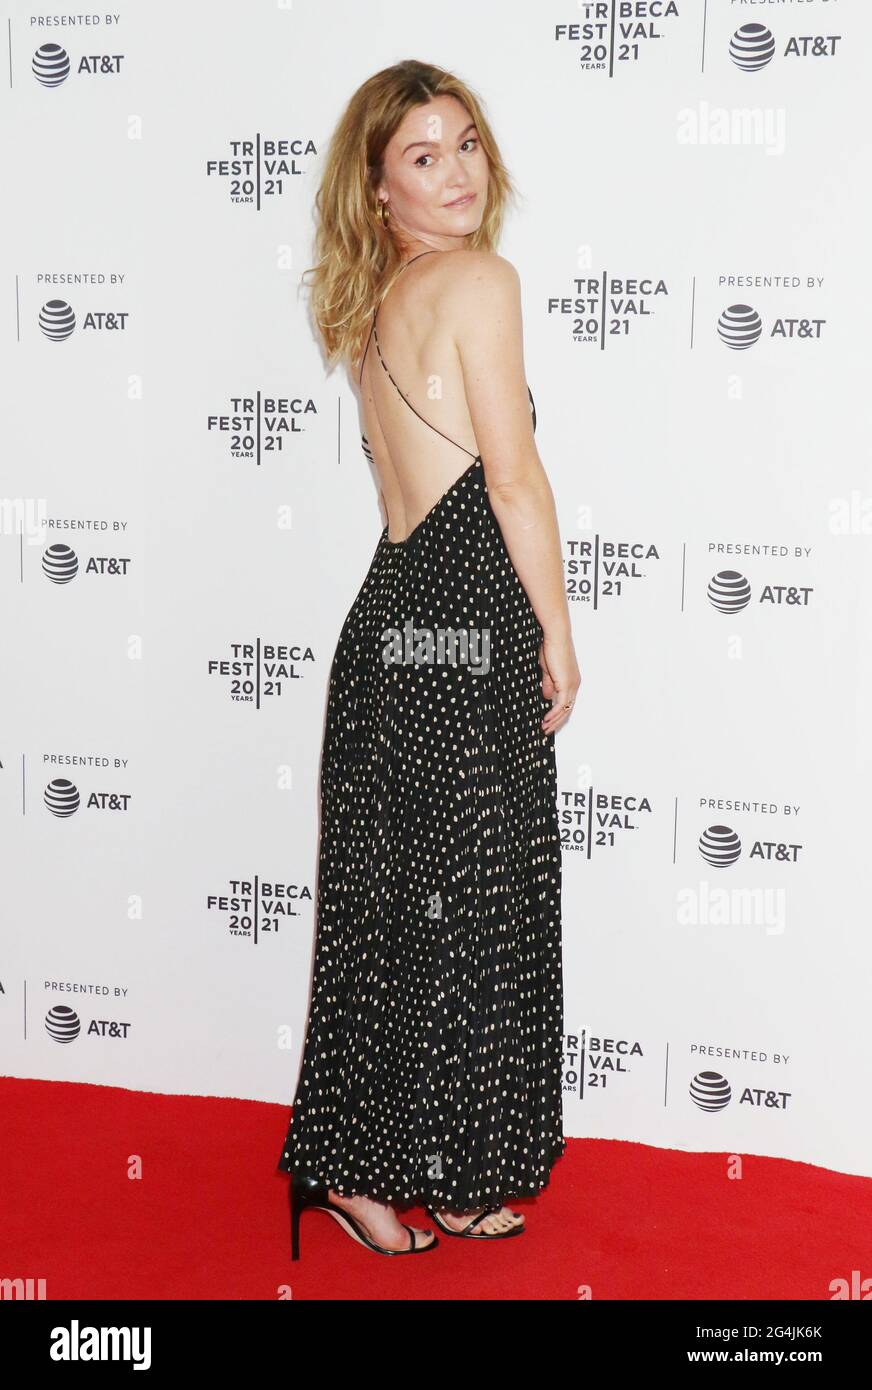 New York, NY, USA. 21st June, 2021. Julia Stiles at the 2021 Tribeca Film Festival premiere of The God Committee at Brooklyn Commons Metrotech in New York City on June 20, 2021 Credit: Rw Media Punch/Alamy Live News Stock Photo